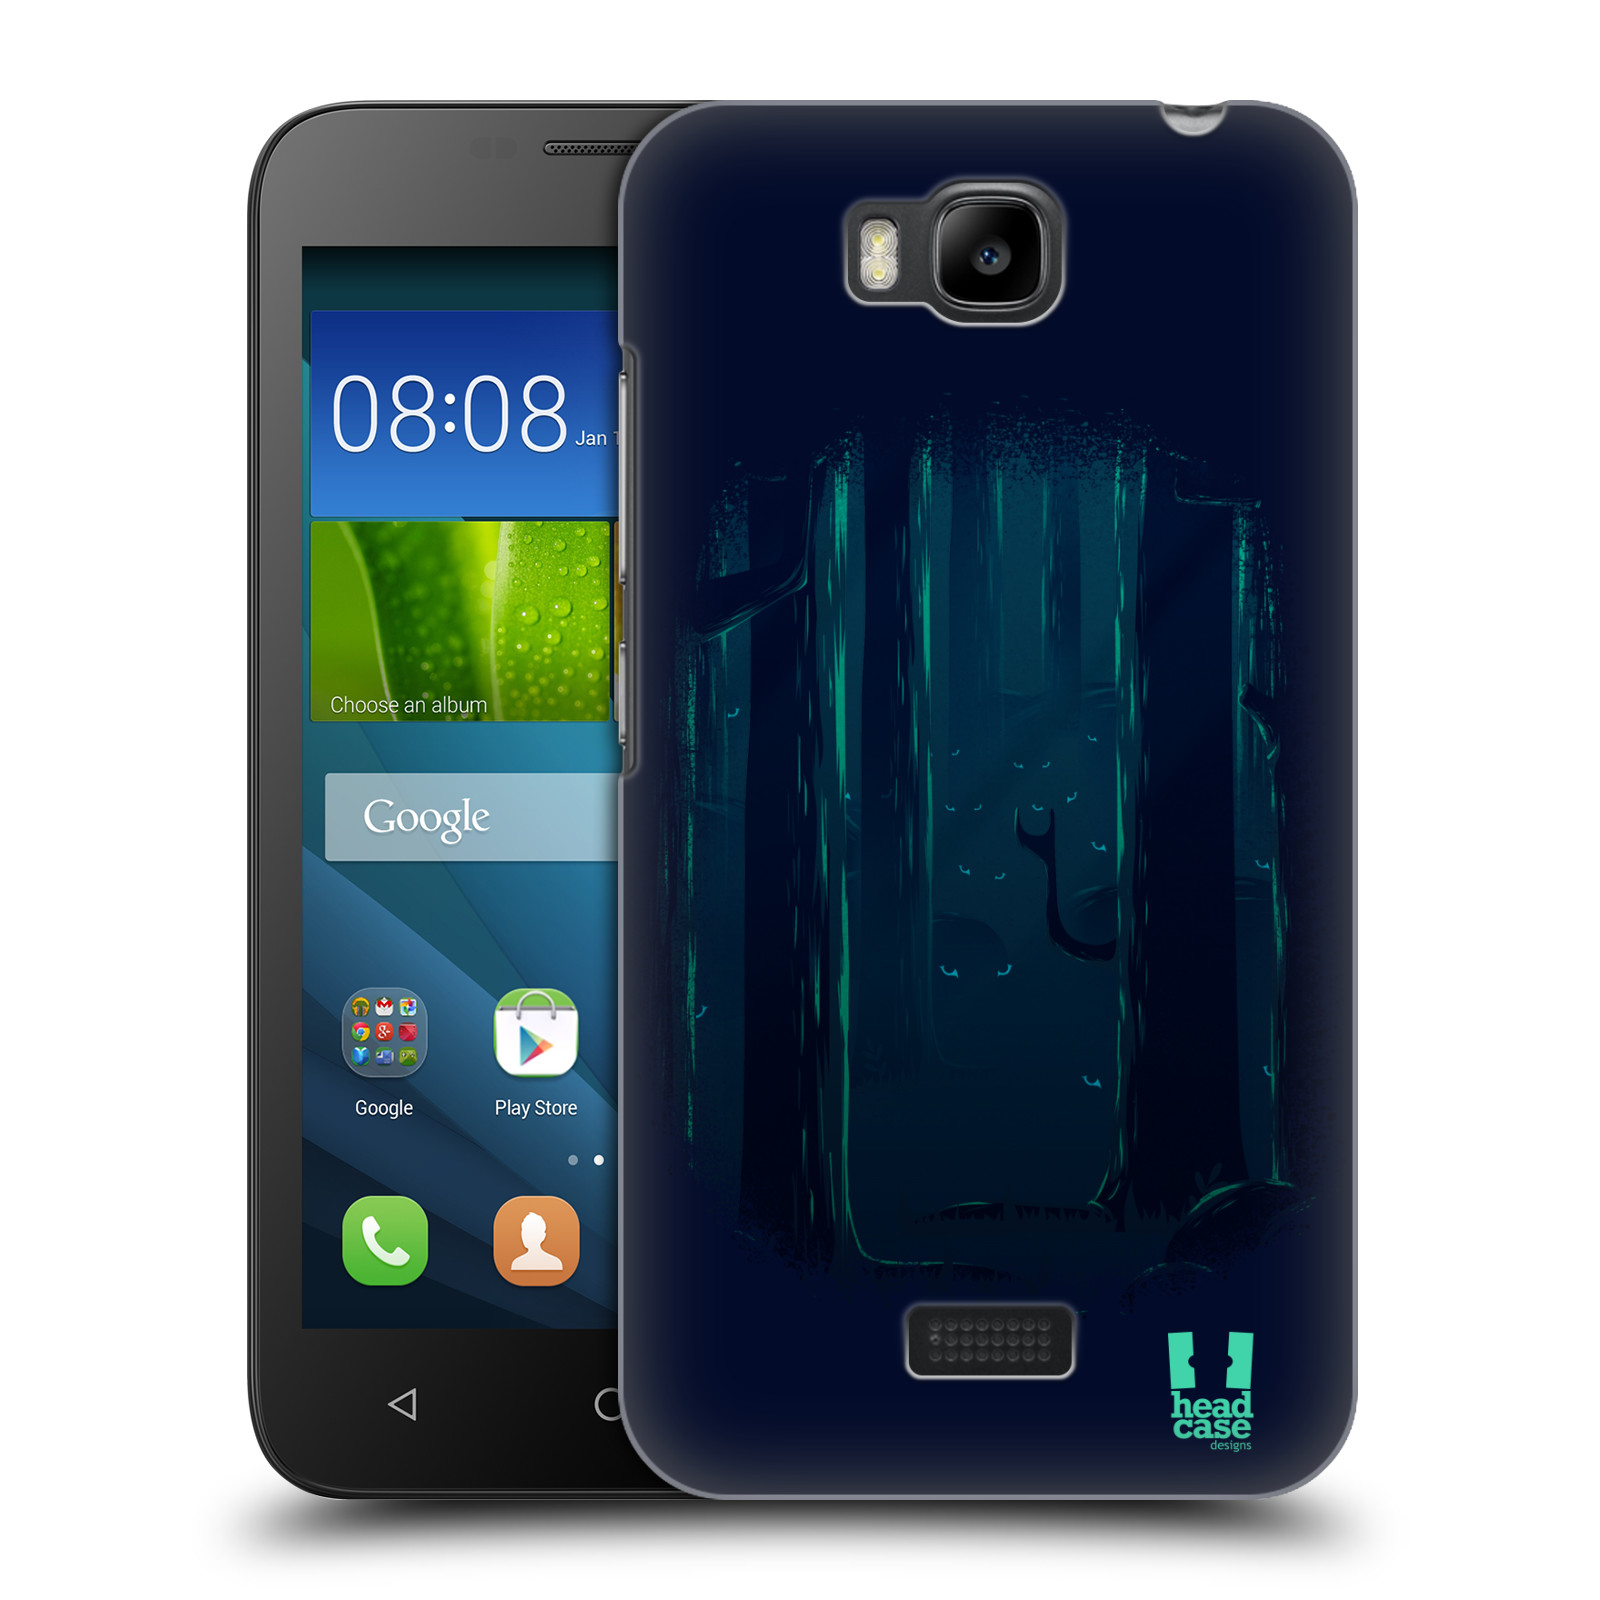 HEAD-CASE-DESIGNS-ENCHANTING-GROVE-HARD-BACK-CASE-FOR-HUAWEI-PHONES-2